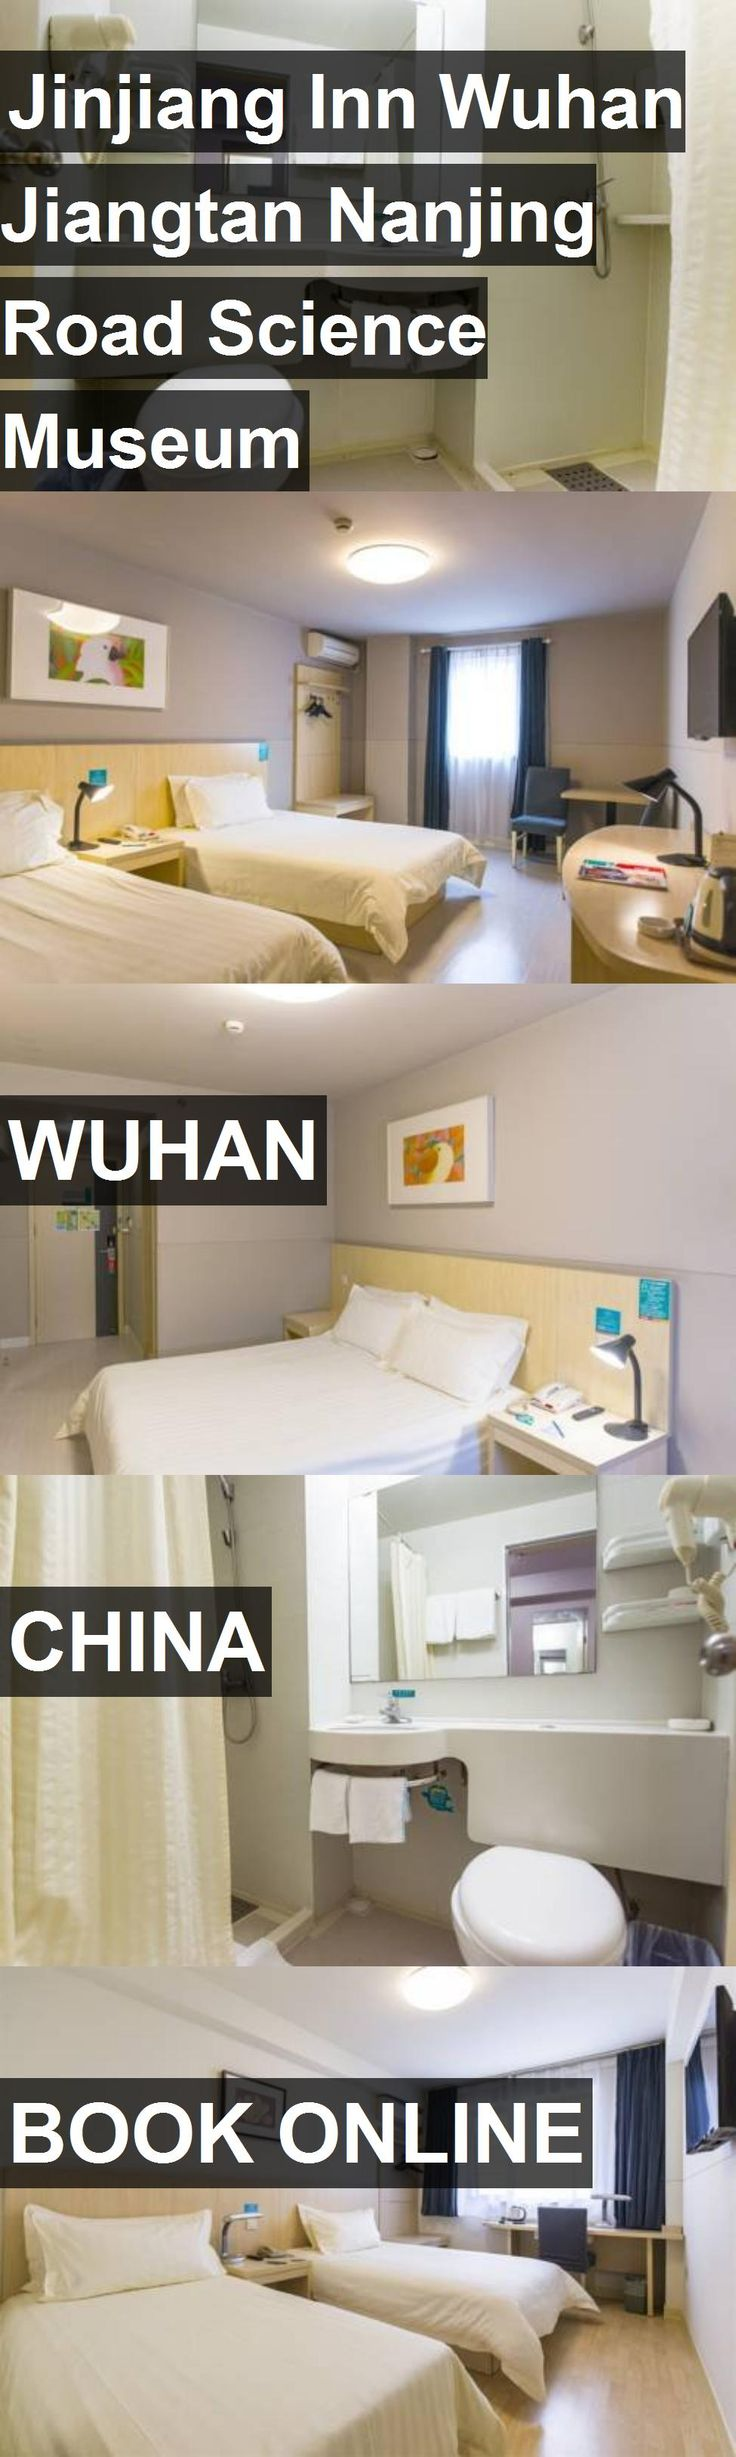 Hotel Jinjiang Inn Wuhan Jiangtan Nanjing Road Science Museum in Wuhan, China. For more information, photos, reviews and best prices please follow the link. #China #Wuhan #JinjiangInnWuhanJiangtanNanjingRoadScienceMuseum #hotel #travel #vacation